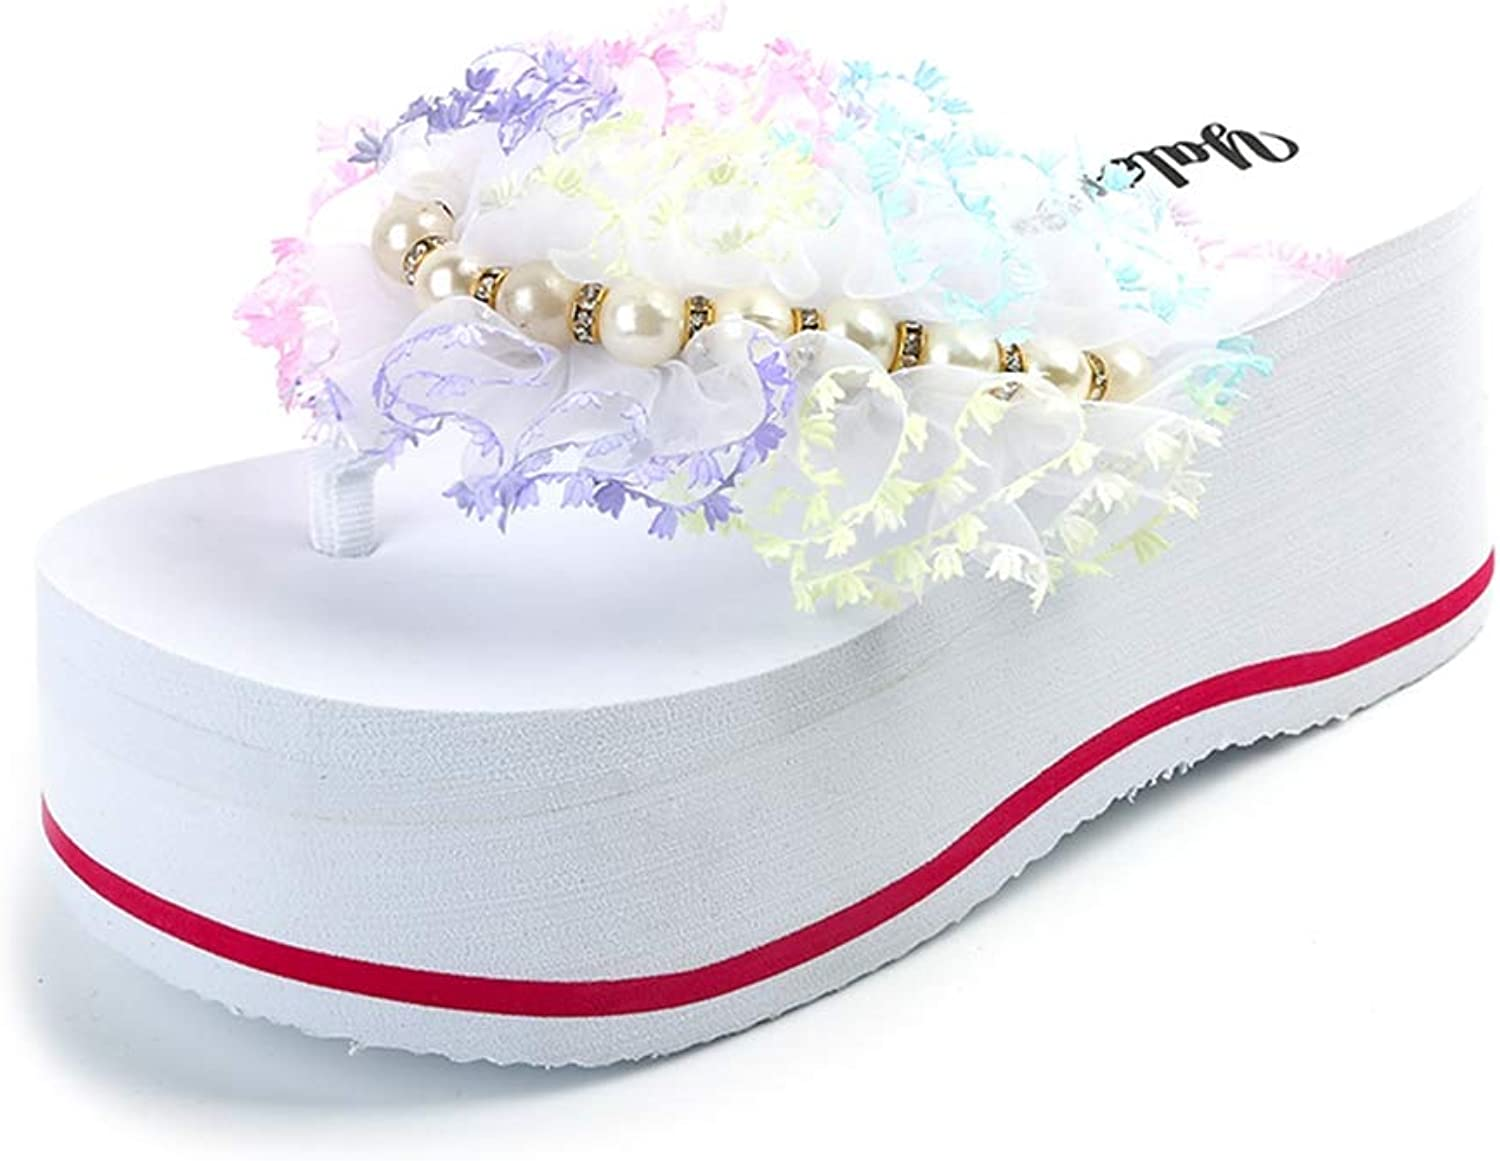 Womens Thongs Flip Flops Lace String Bead Beach Flowers Footwears High Heels Platform Slides Wedges Sandals for Girls shoes